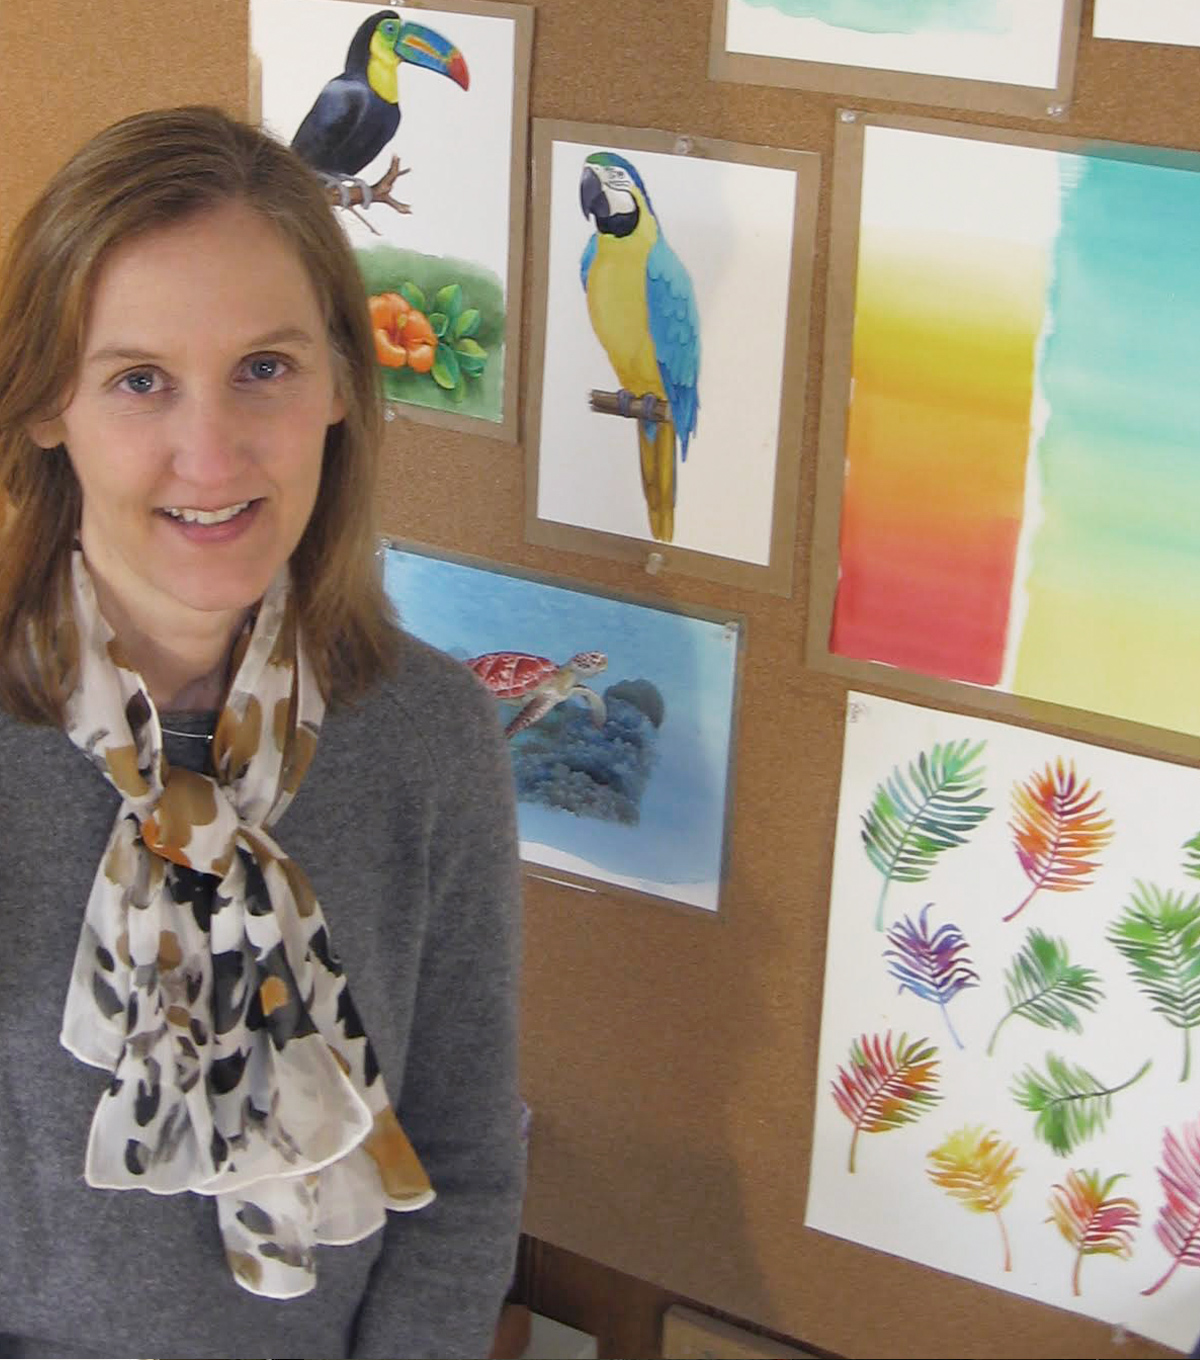 Interview with Artist Beth Grove